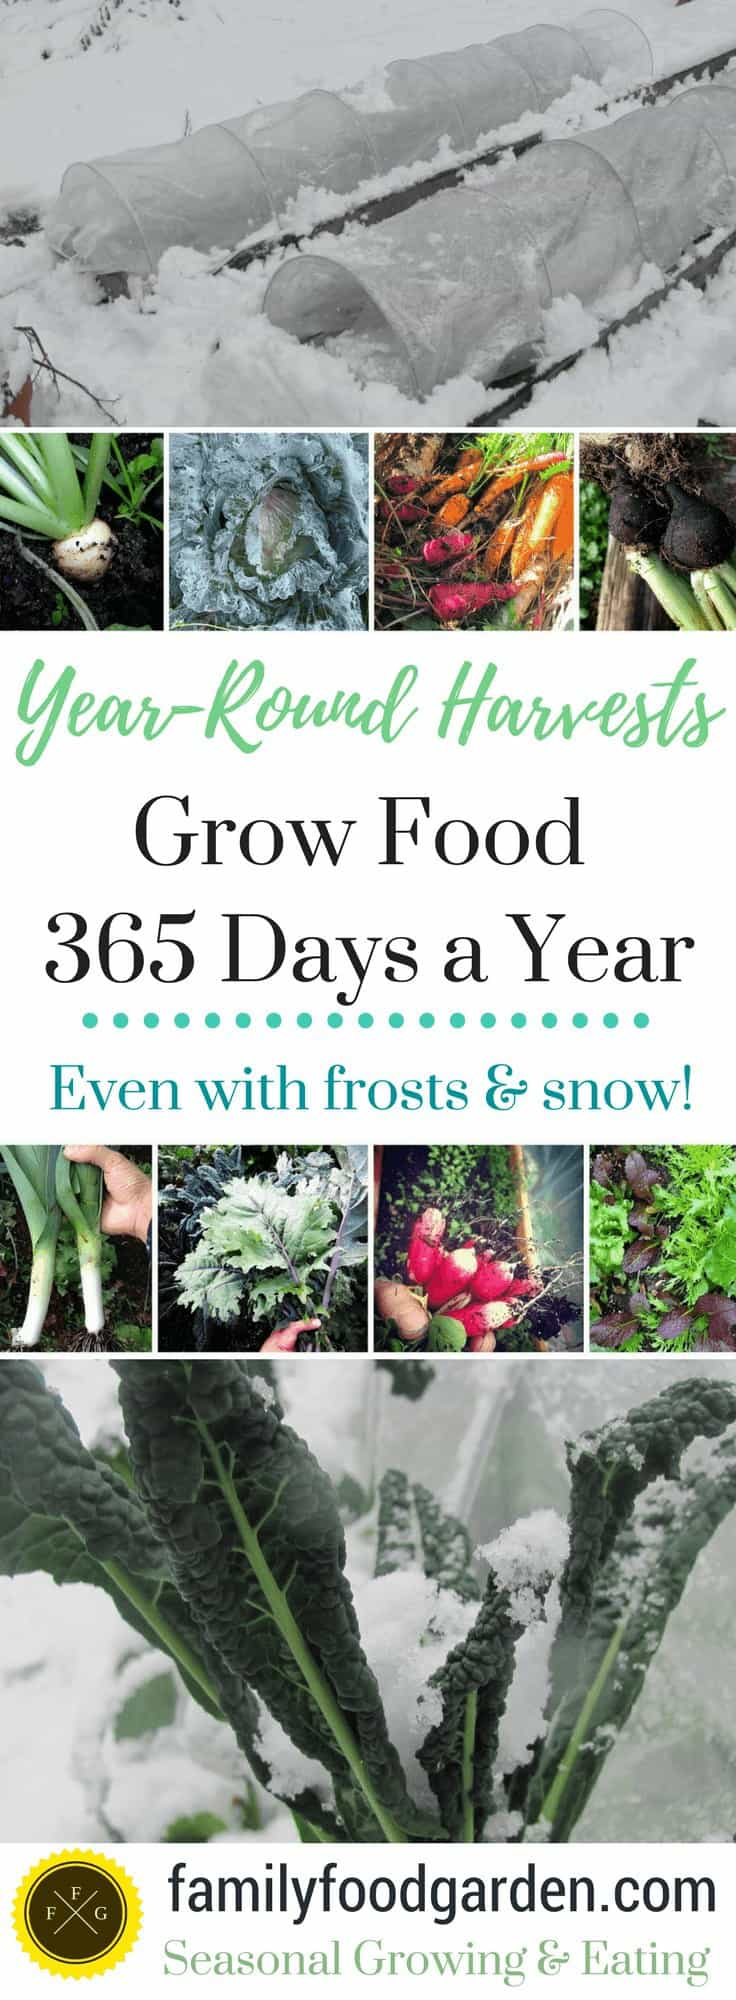 How to grow food year-round